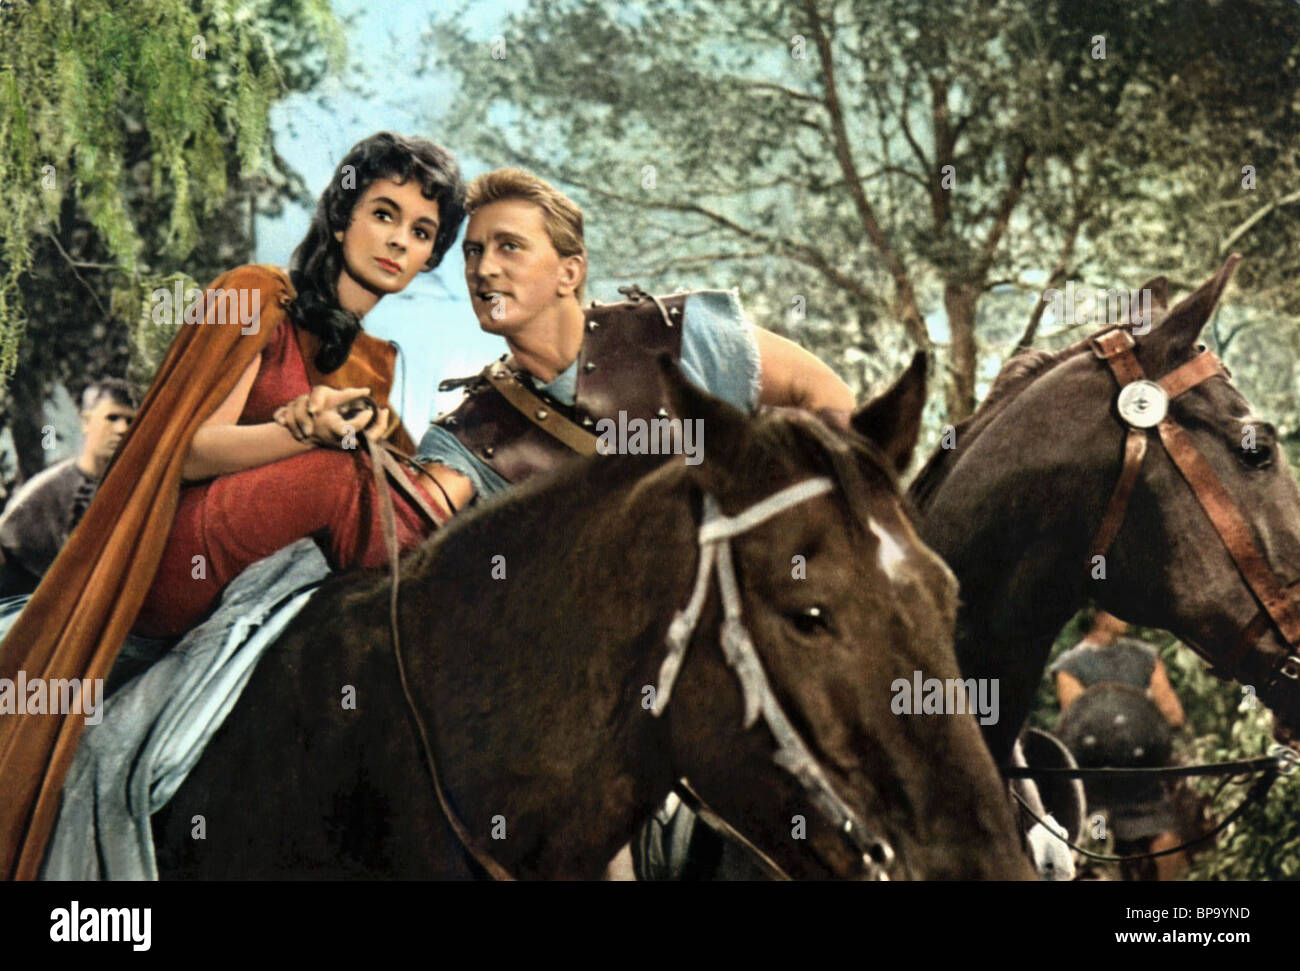 a review of the film spartacus Spartacus (1960) and the guns of navarone (1961) – the guardian review spartacus is by far the more intelligent and satisfactory film spartacus is the first of the left's martyrs and presumably humanists are meant to be as inspired by the film as the converted are by the efforts of cecil b de.